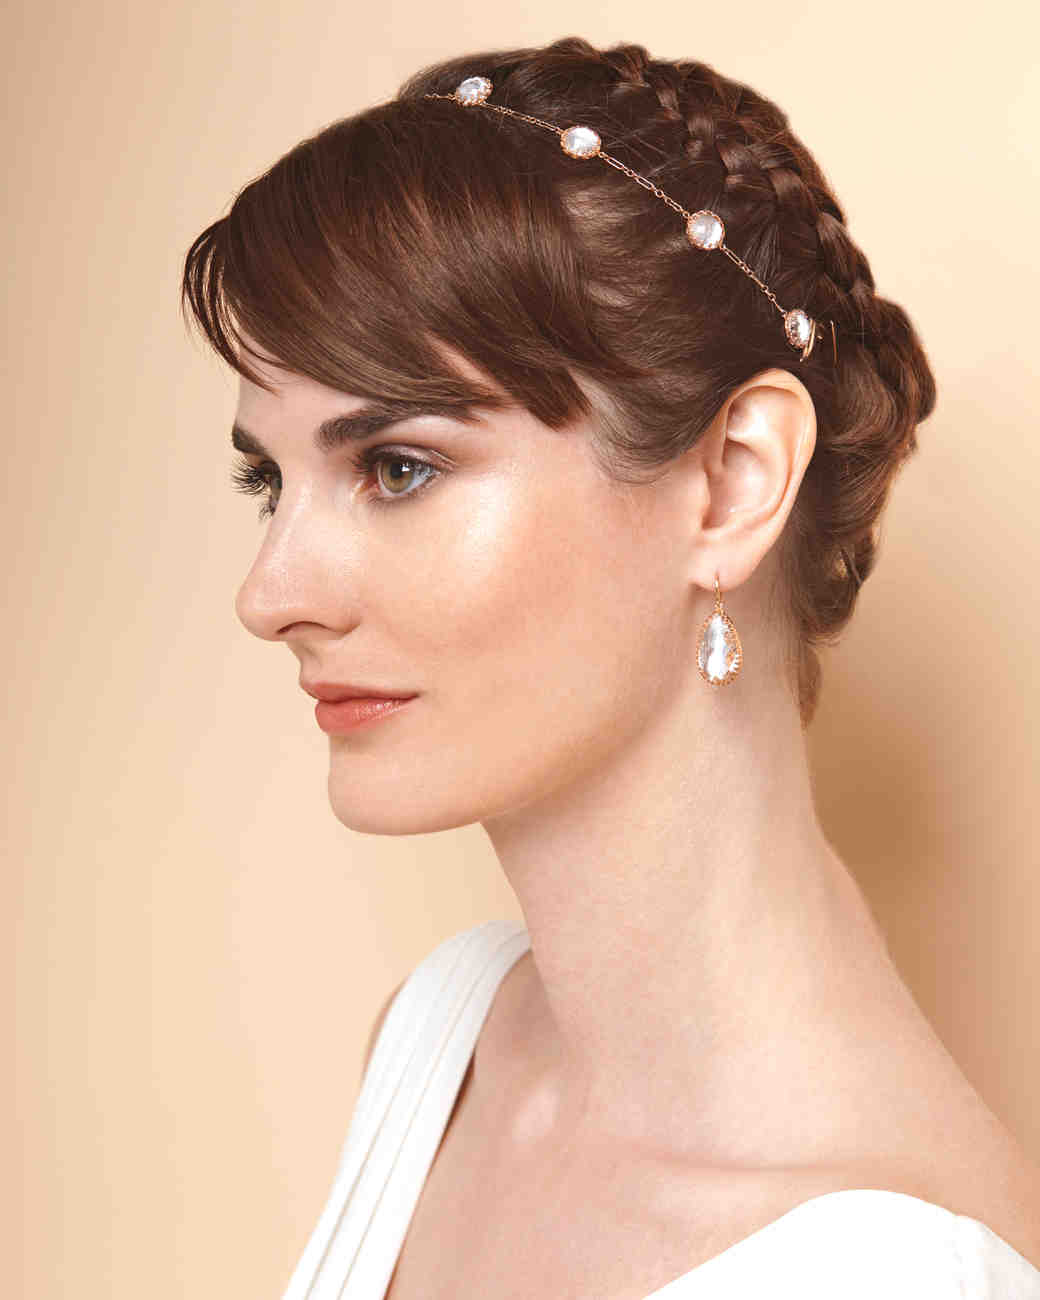 33 ways to wear your hair down for your wedding martha stewart 4 ways to wear a short hairstyle on your wedding day izmirmasajfo